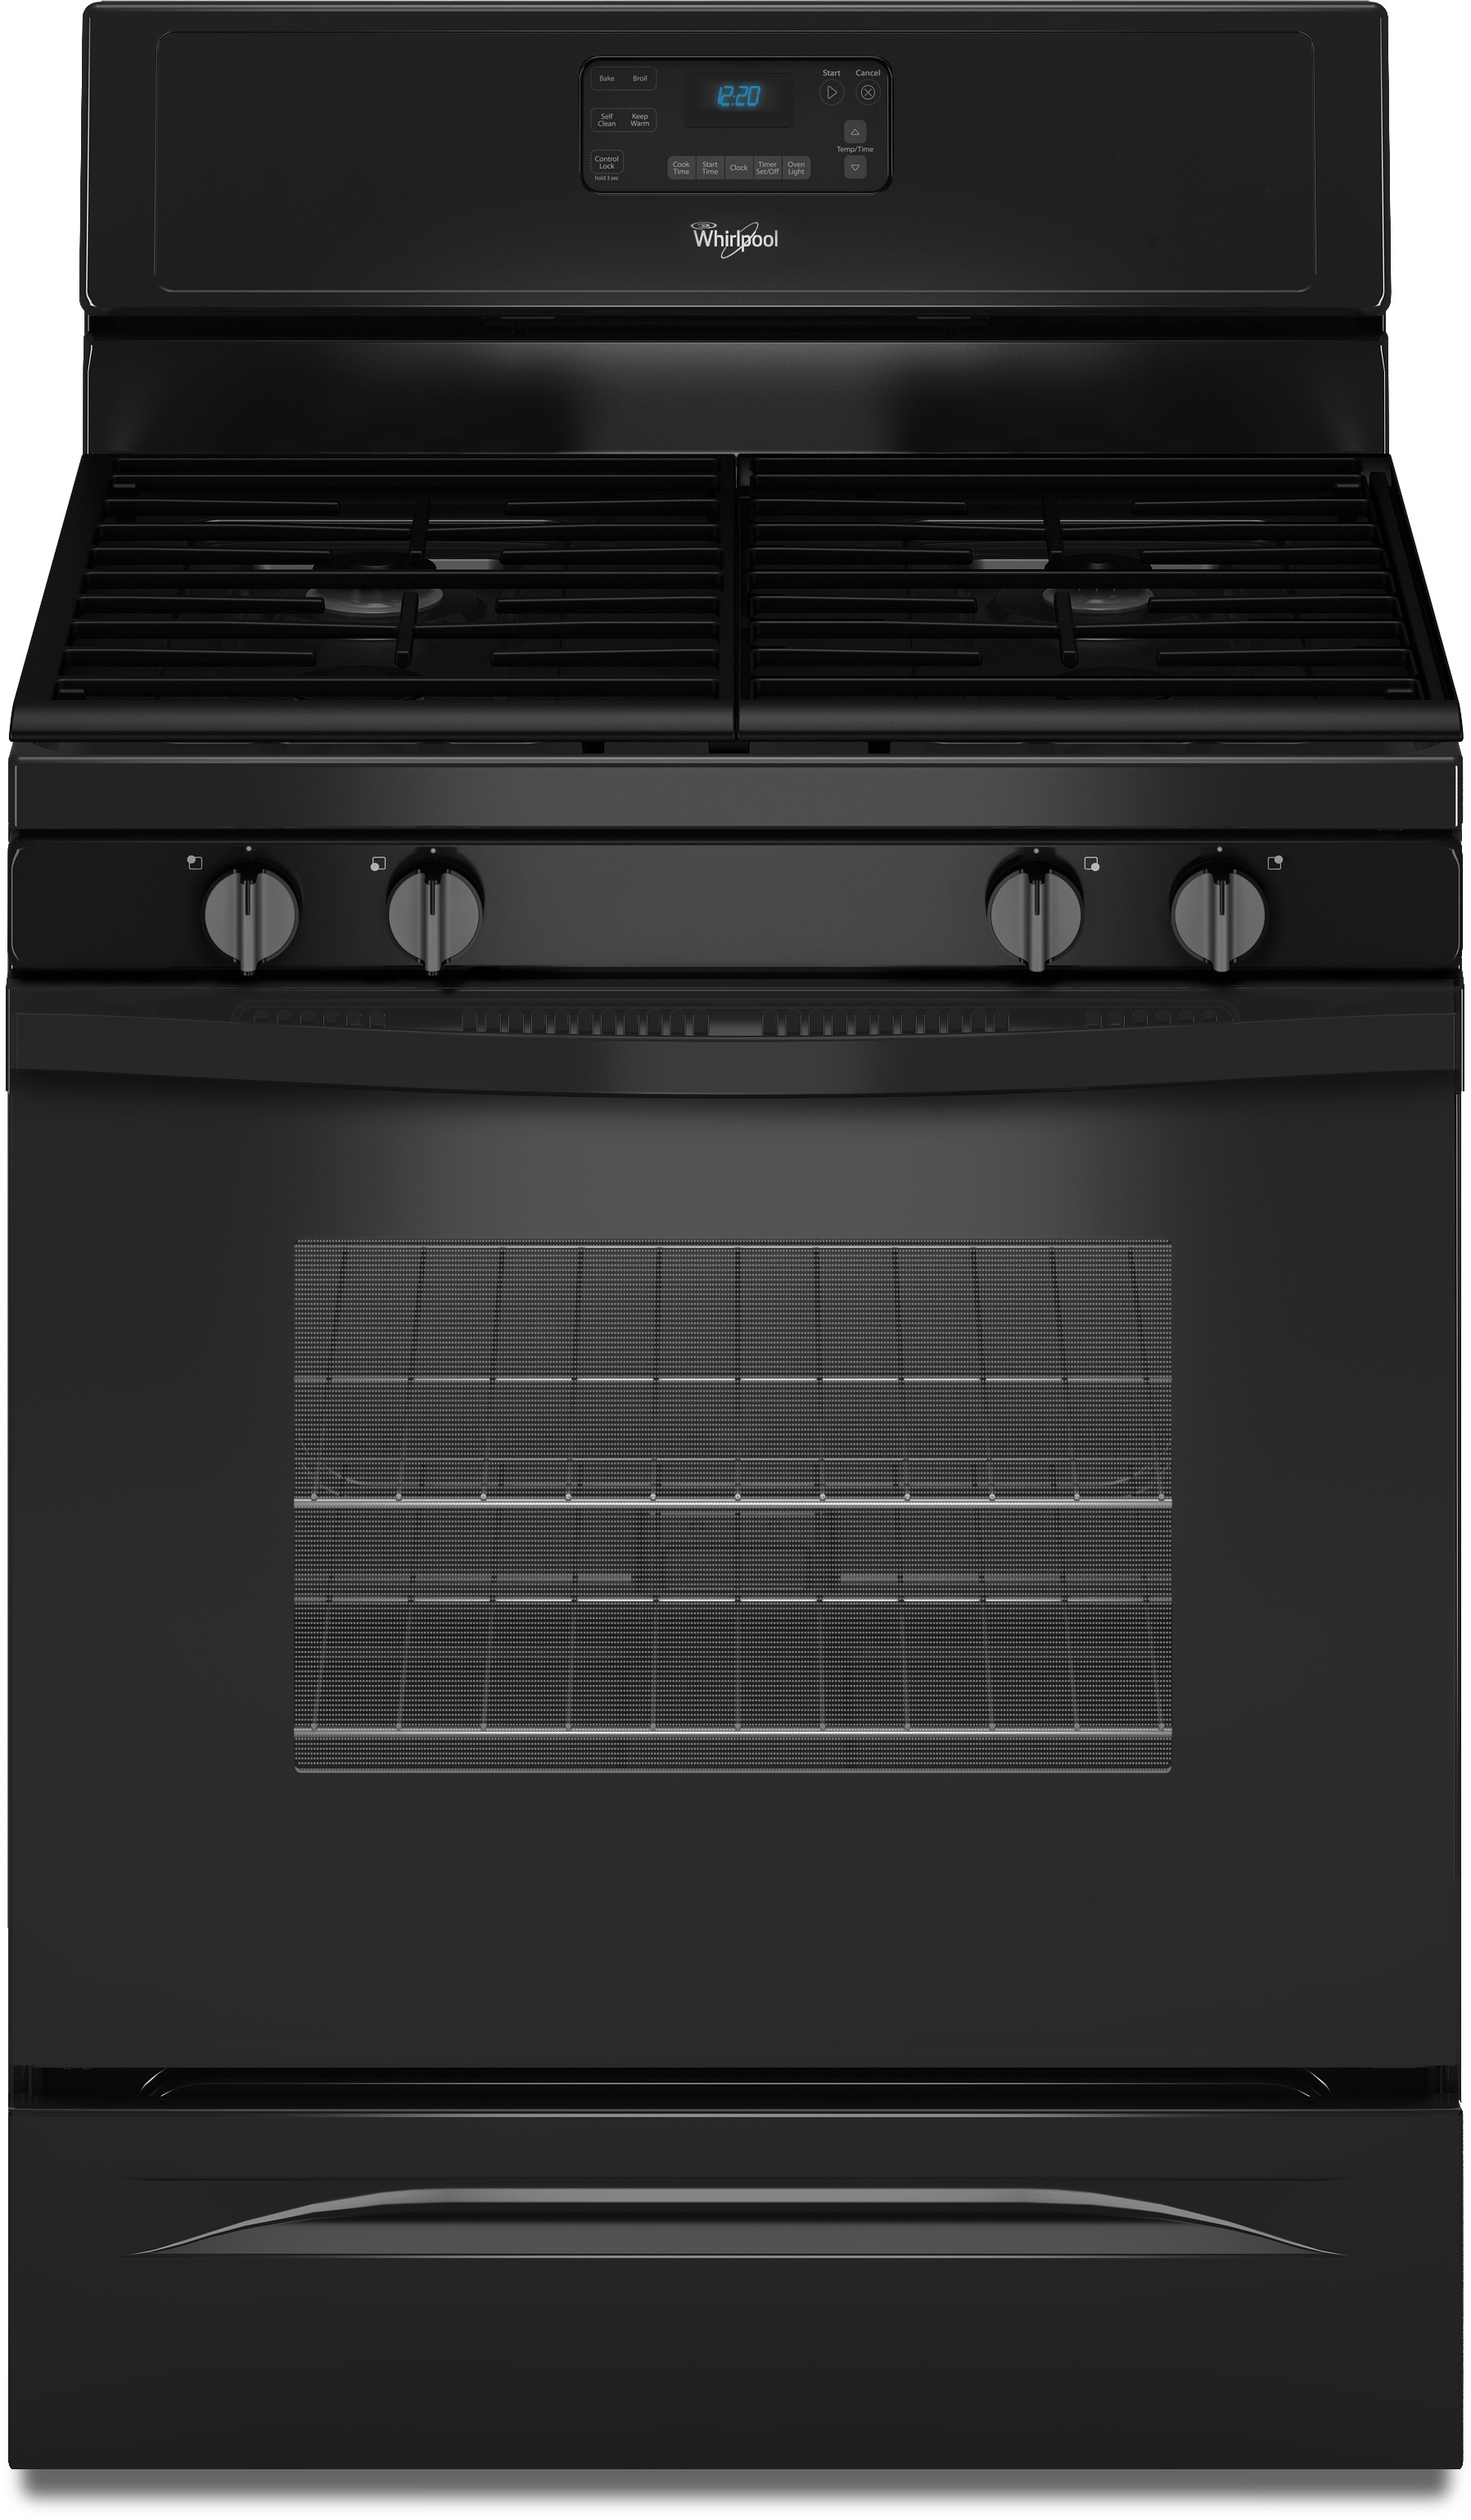 Whirlpool Wfg515s0eb 30 Inch Freestanding Gas Range With Accubake